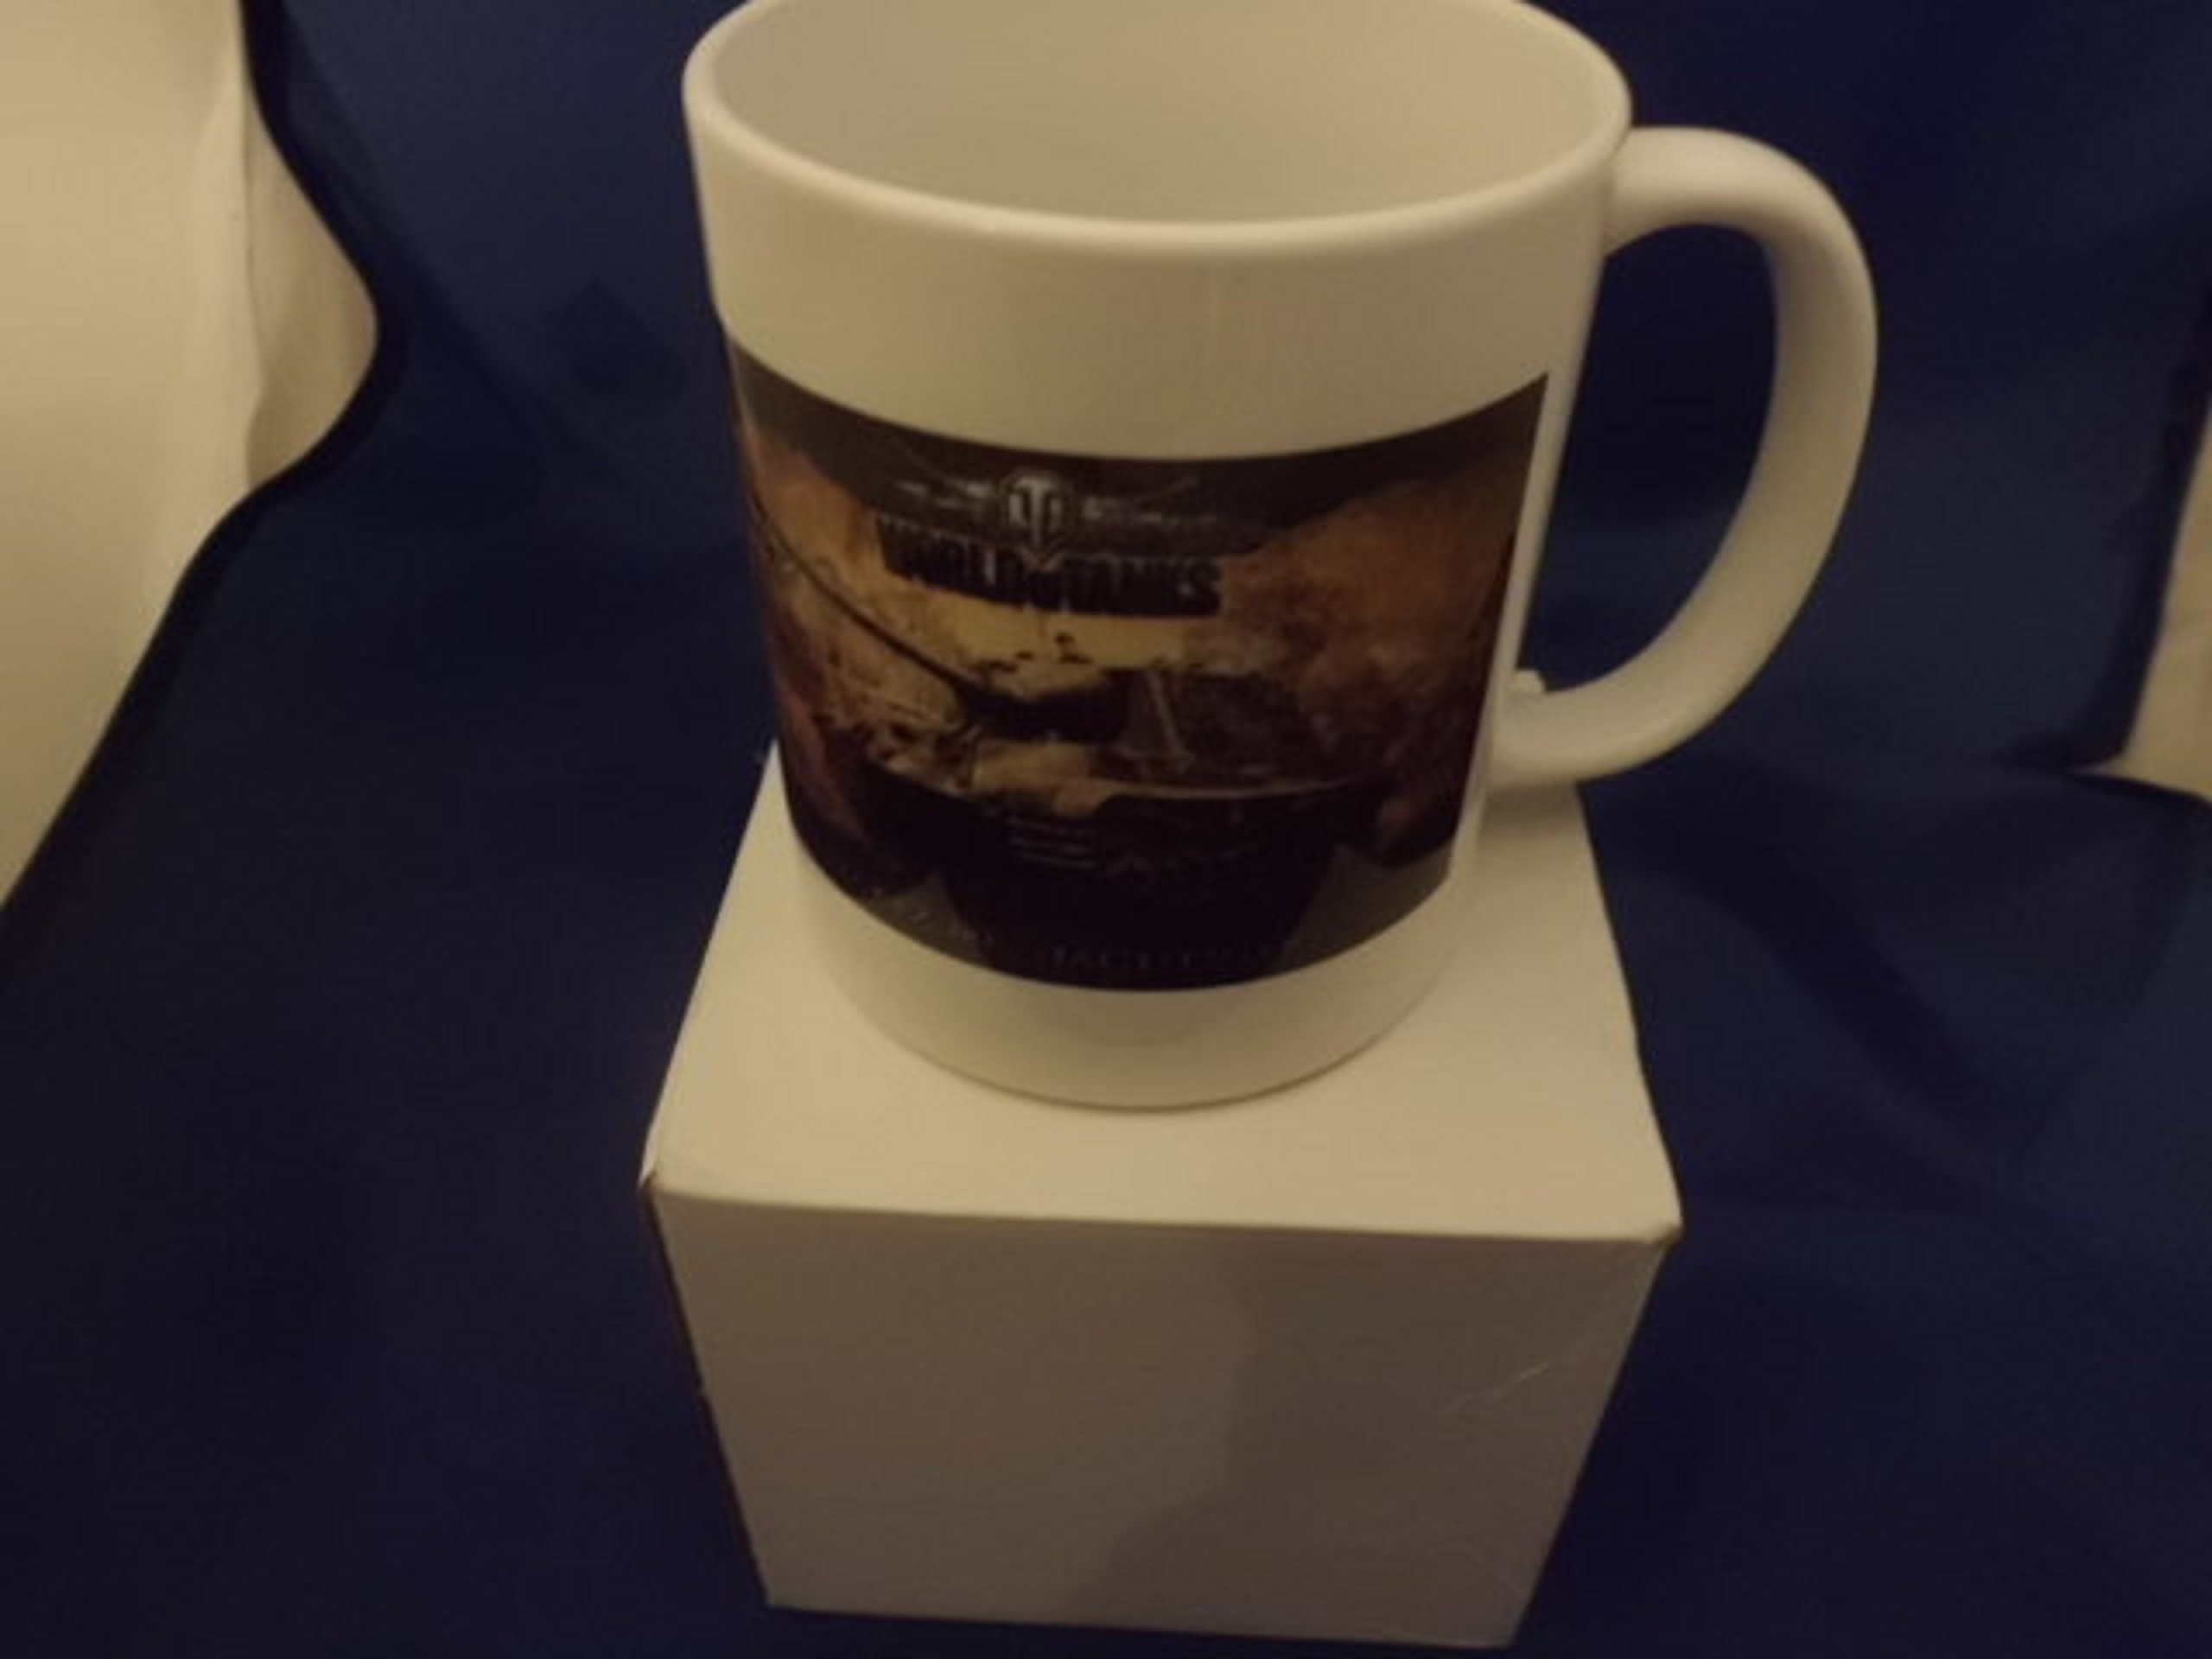 World Of Tanks JagdTiger military mug